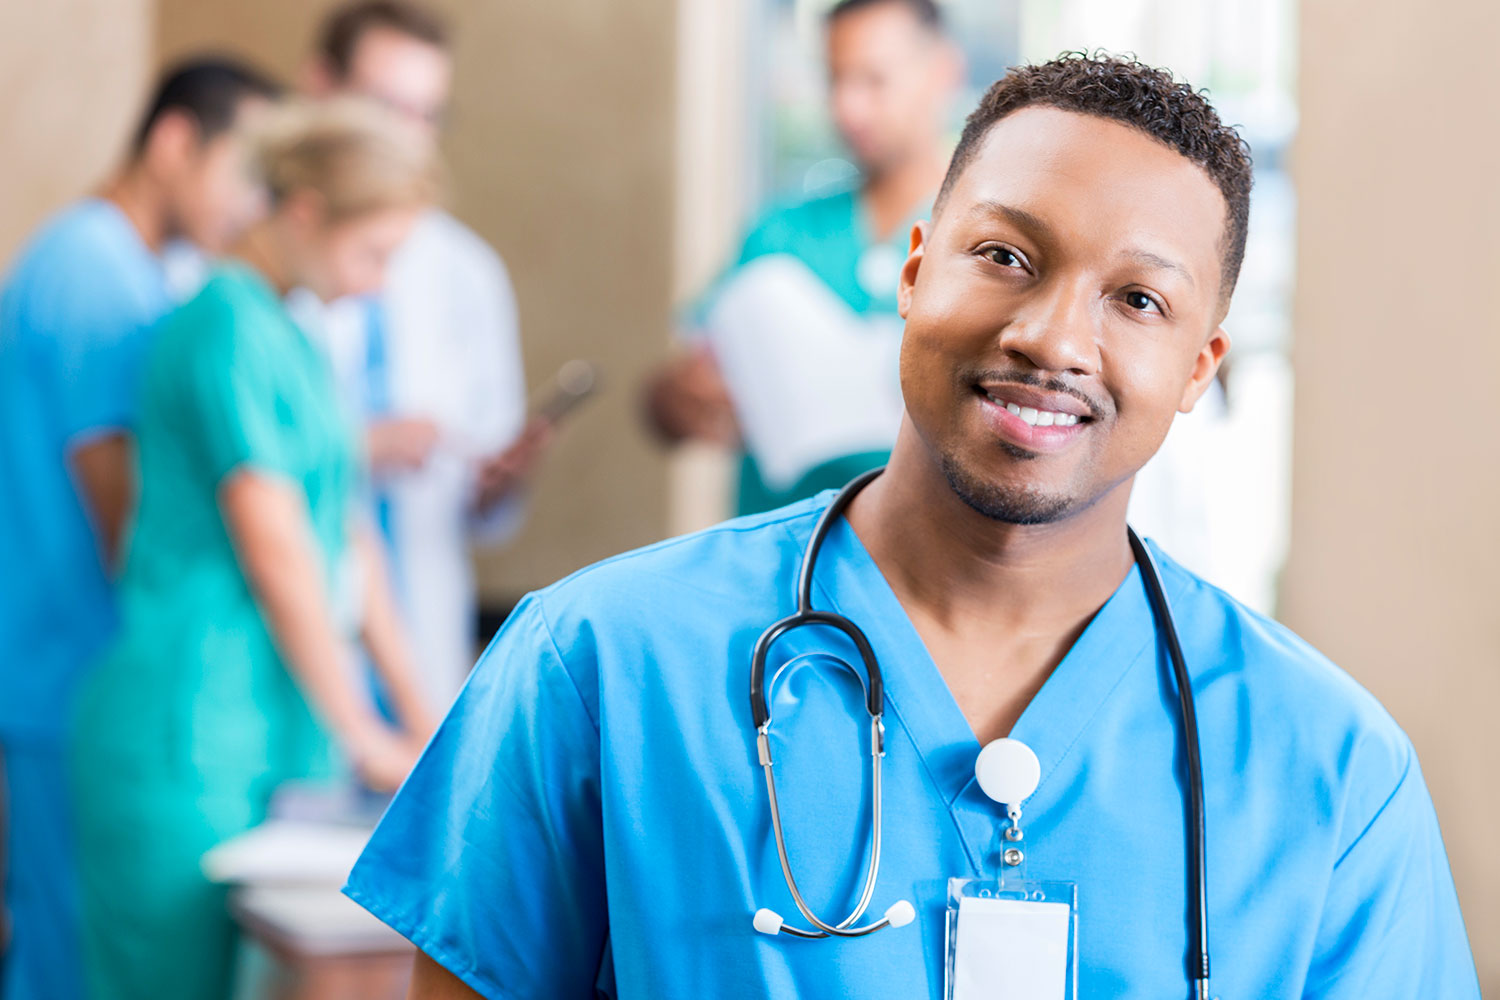 about talemed nurse staffing healthcare carer ケアラー 介護入門